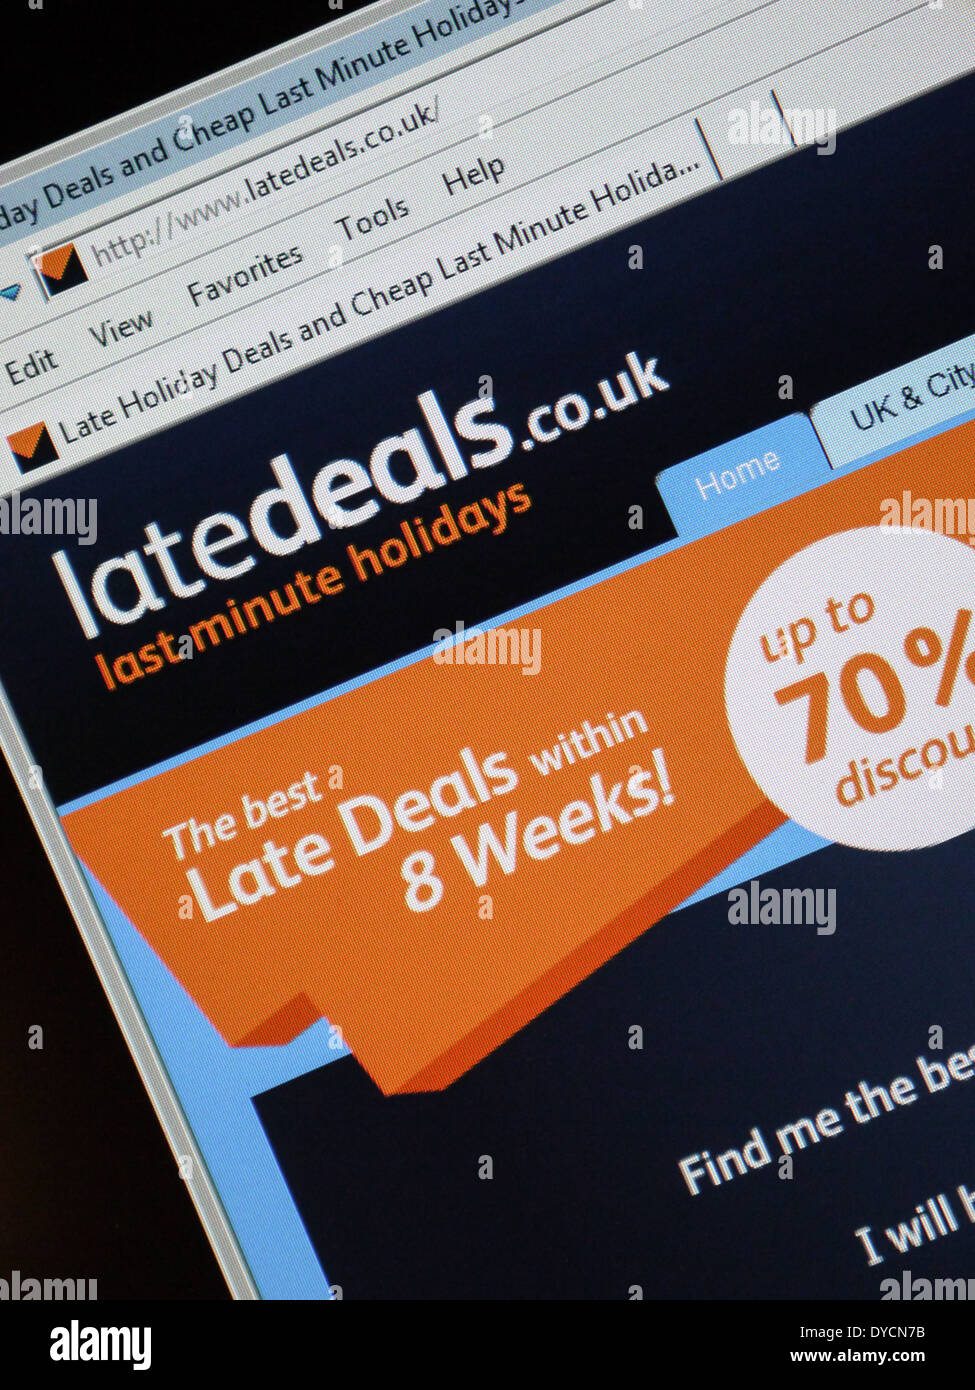 Last minute holiday deal latedeals sito web Immagini Stock